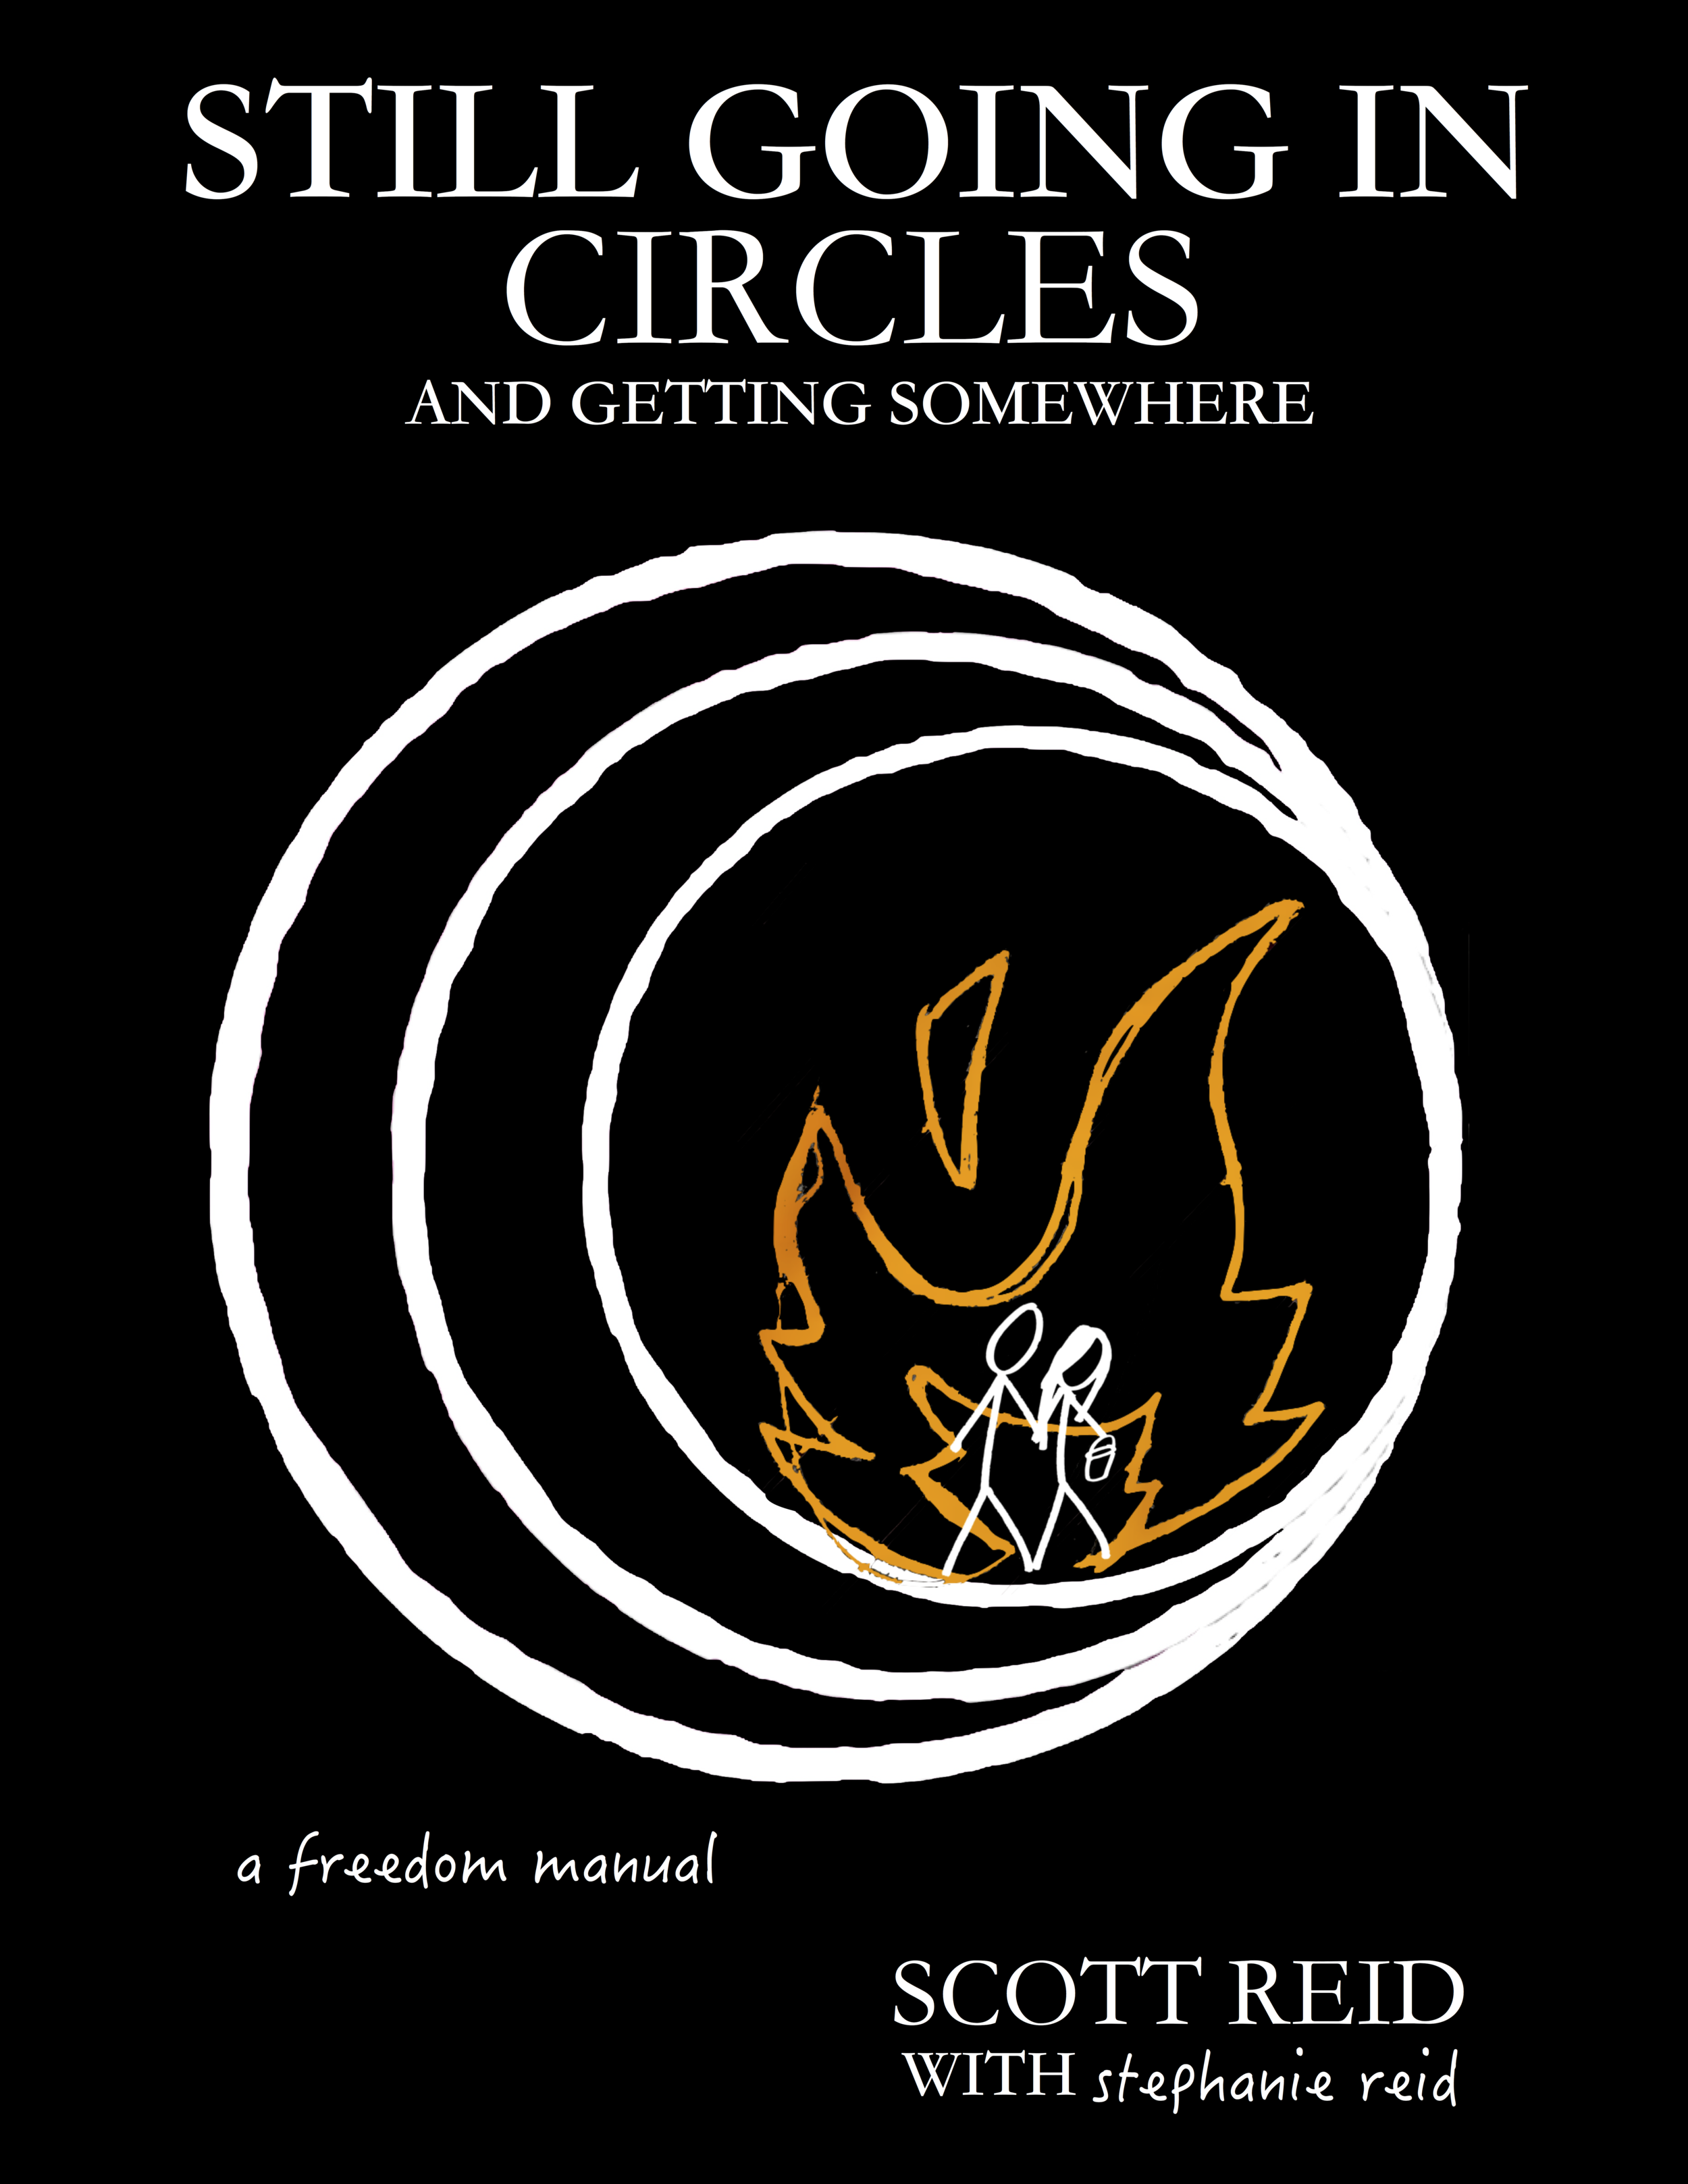 Exclusively on Amazon now! - Still Going In Circles and Getting SomewhereAn in-depth look at James 1:21 in light of our journey through Isaiah 40:27-32 & James 1:2-4. It's the micro-processes of the Father in the heart of His kids bringing us to the place where we can feel about things the way He feels about them, think about things the way He thinks about them, and act in step with Him.… It's about the salvation of the soul.